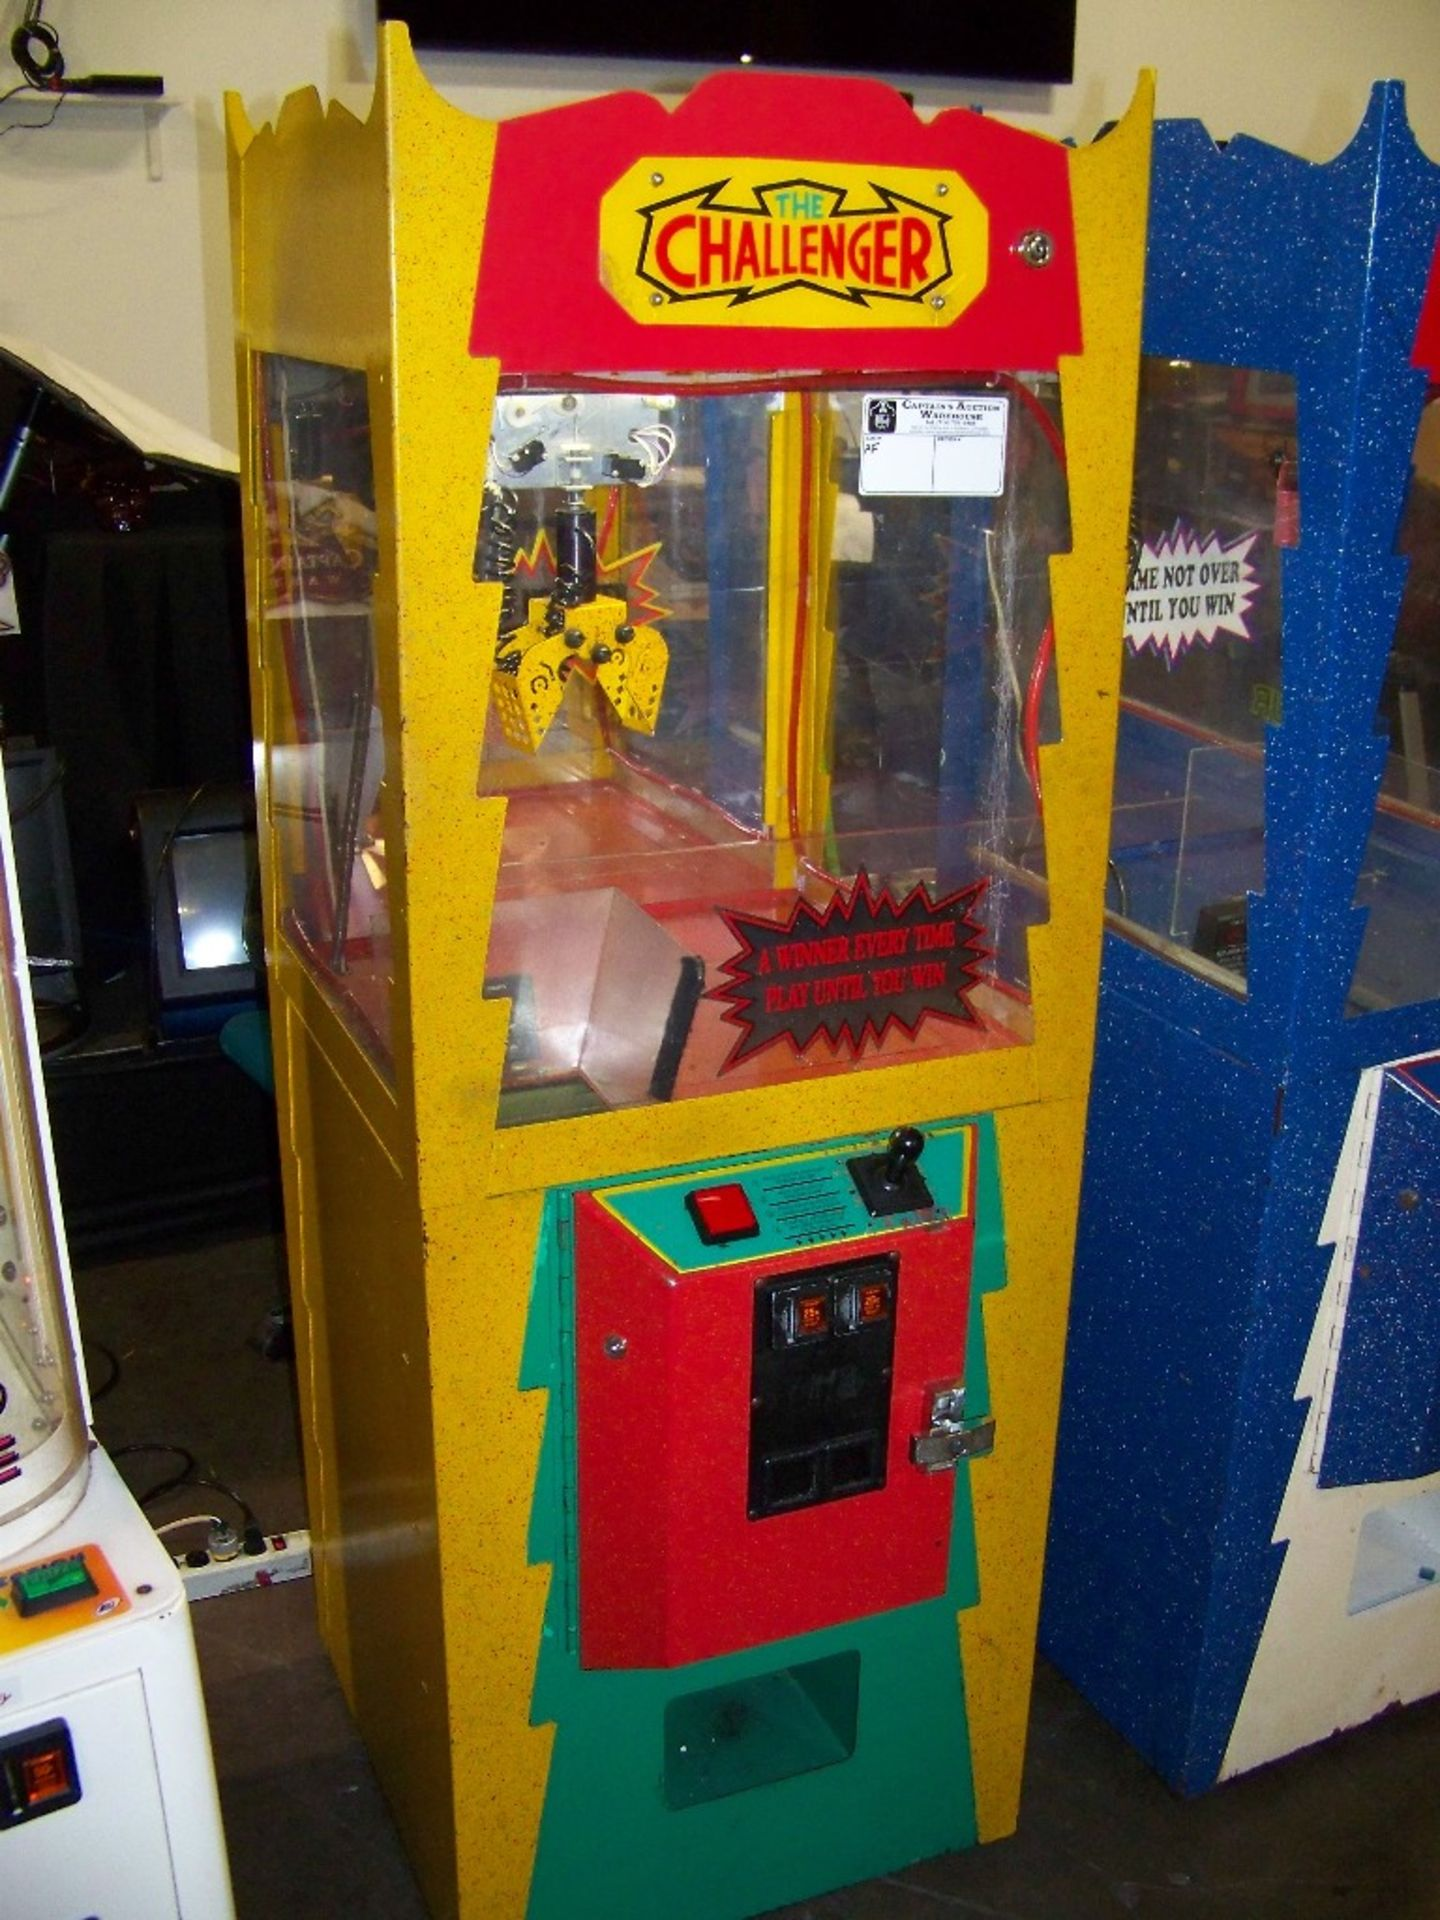 THE CHALLENGER CANDY SHOVEL CRANE MACHINE YELLOW - Image 2 of 2